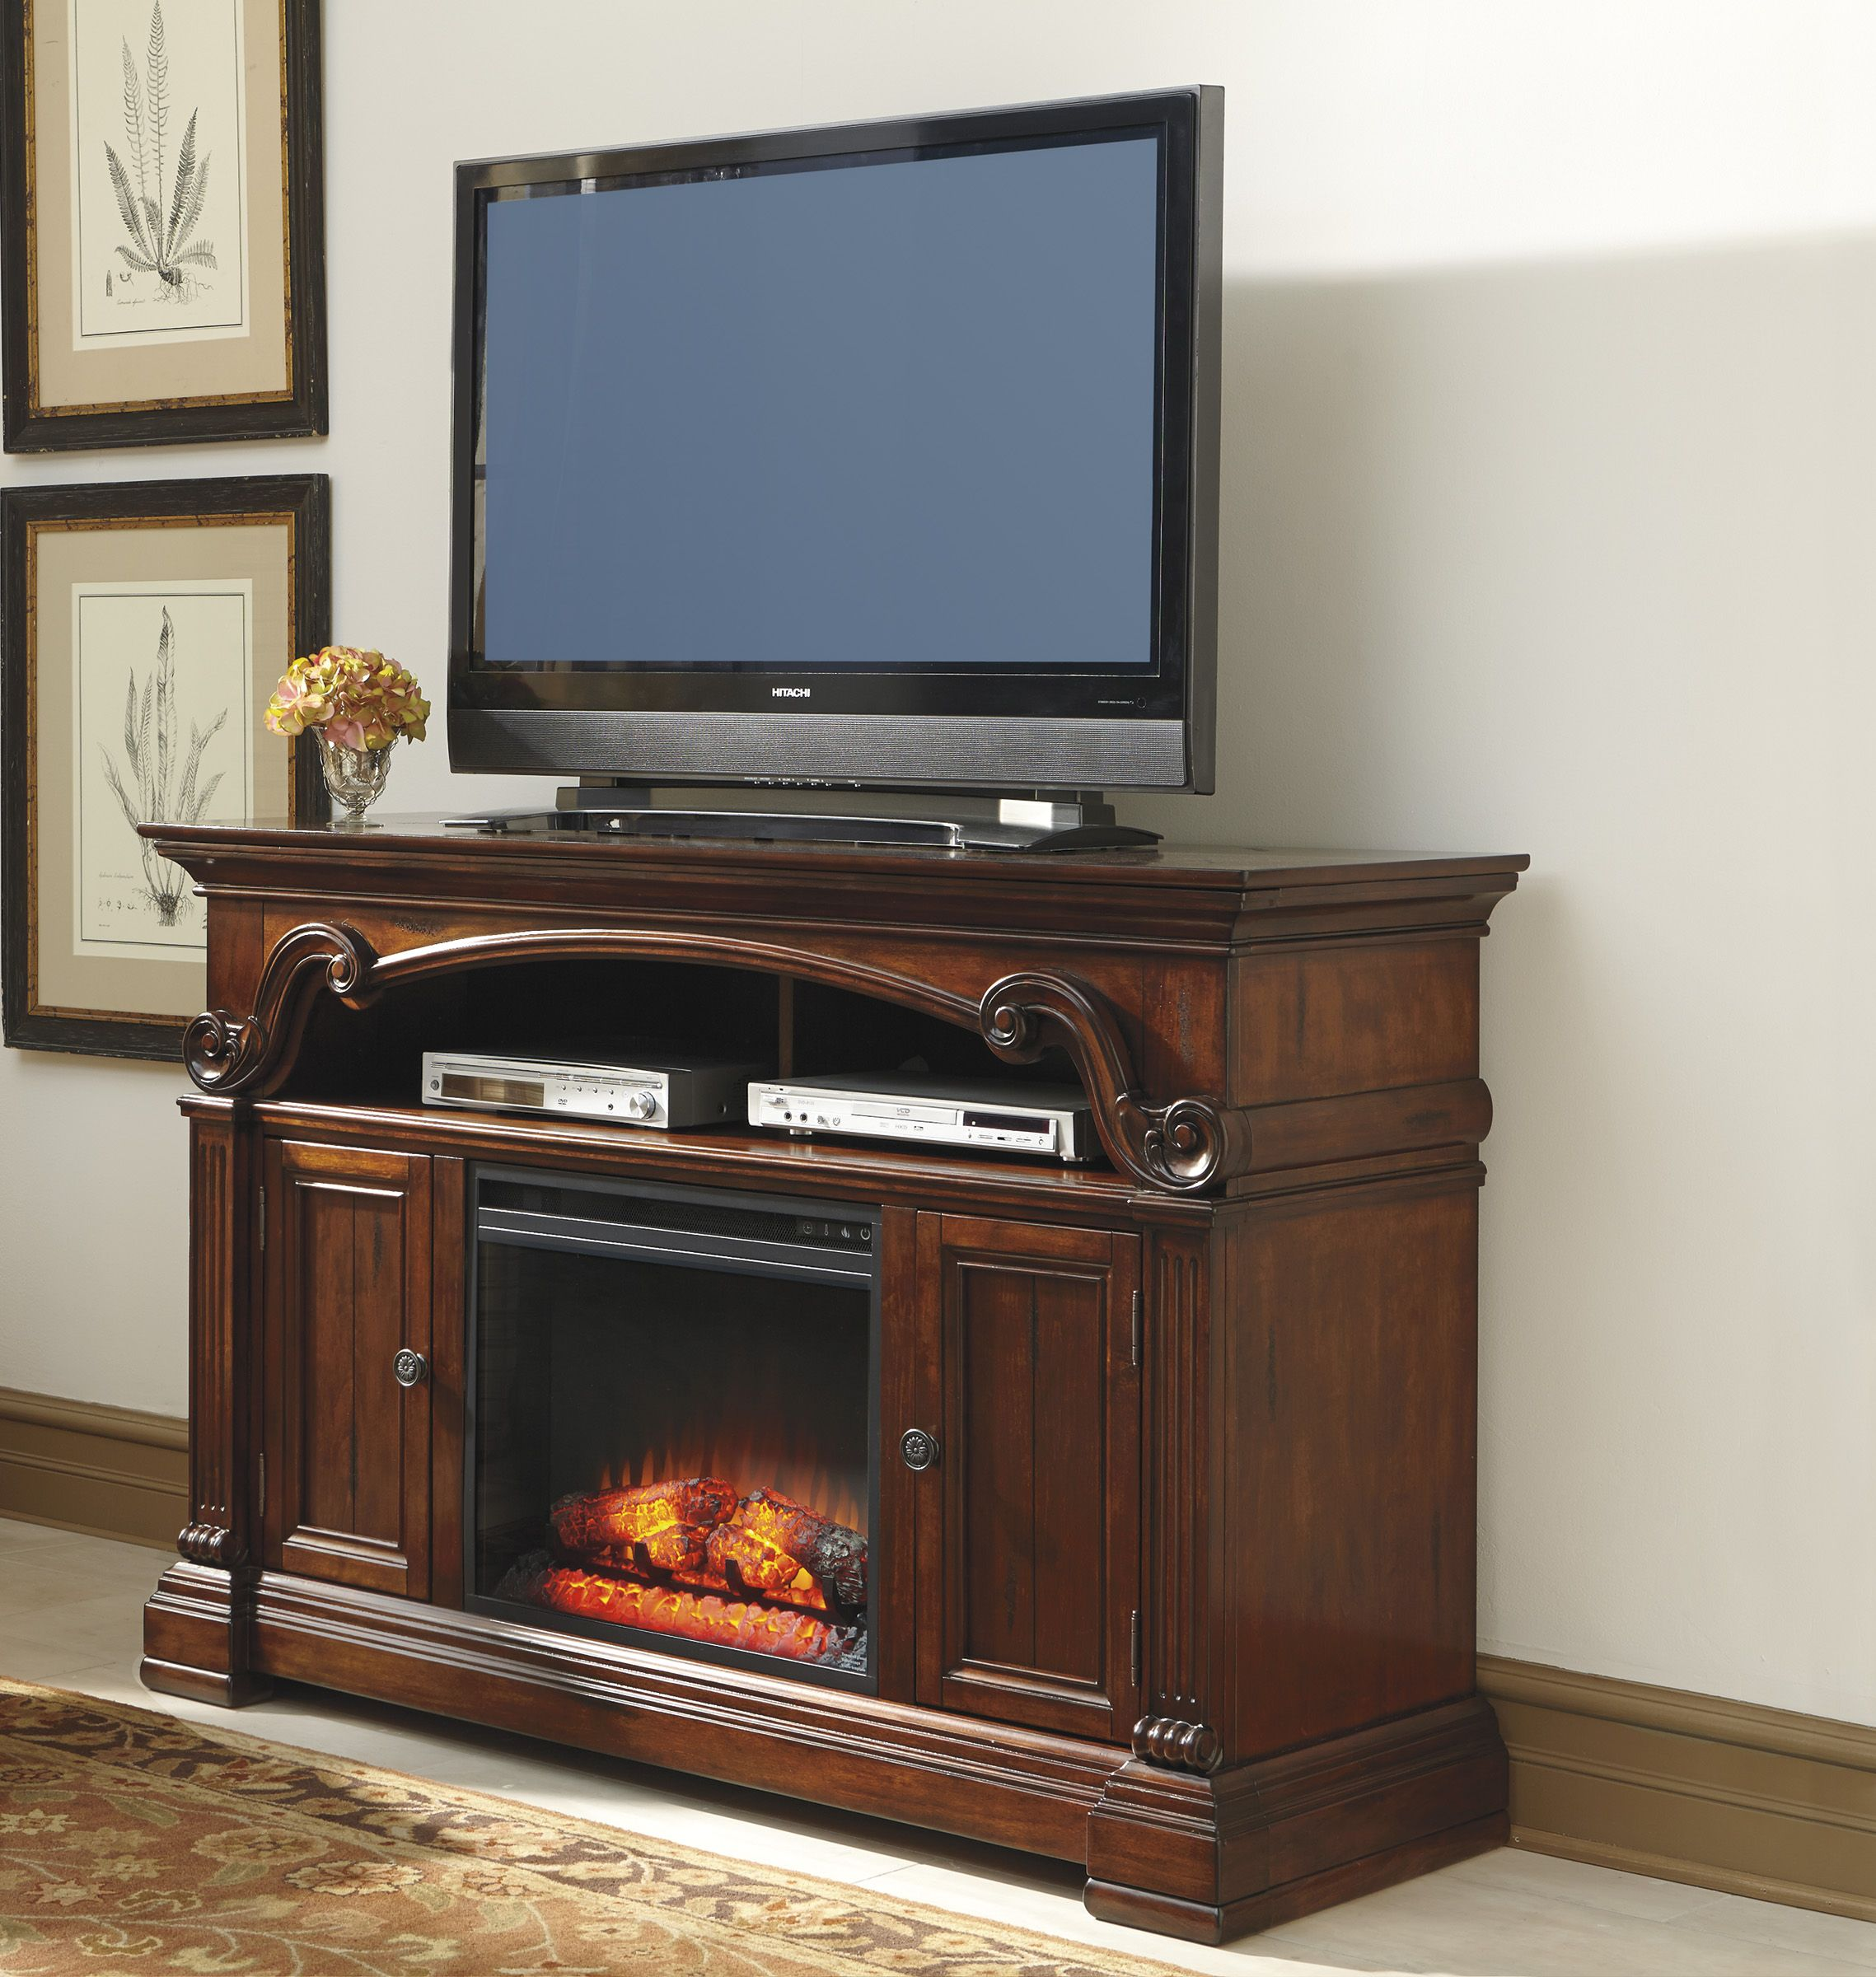 Gaston 60 Tv Stand With Fireplace By Ashley At Crowley Furniture In